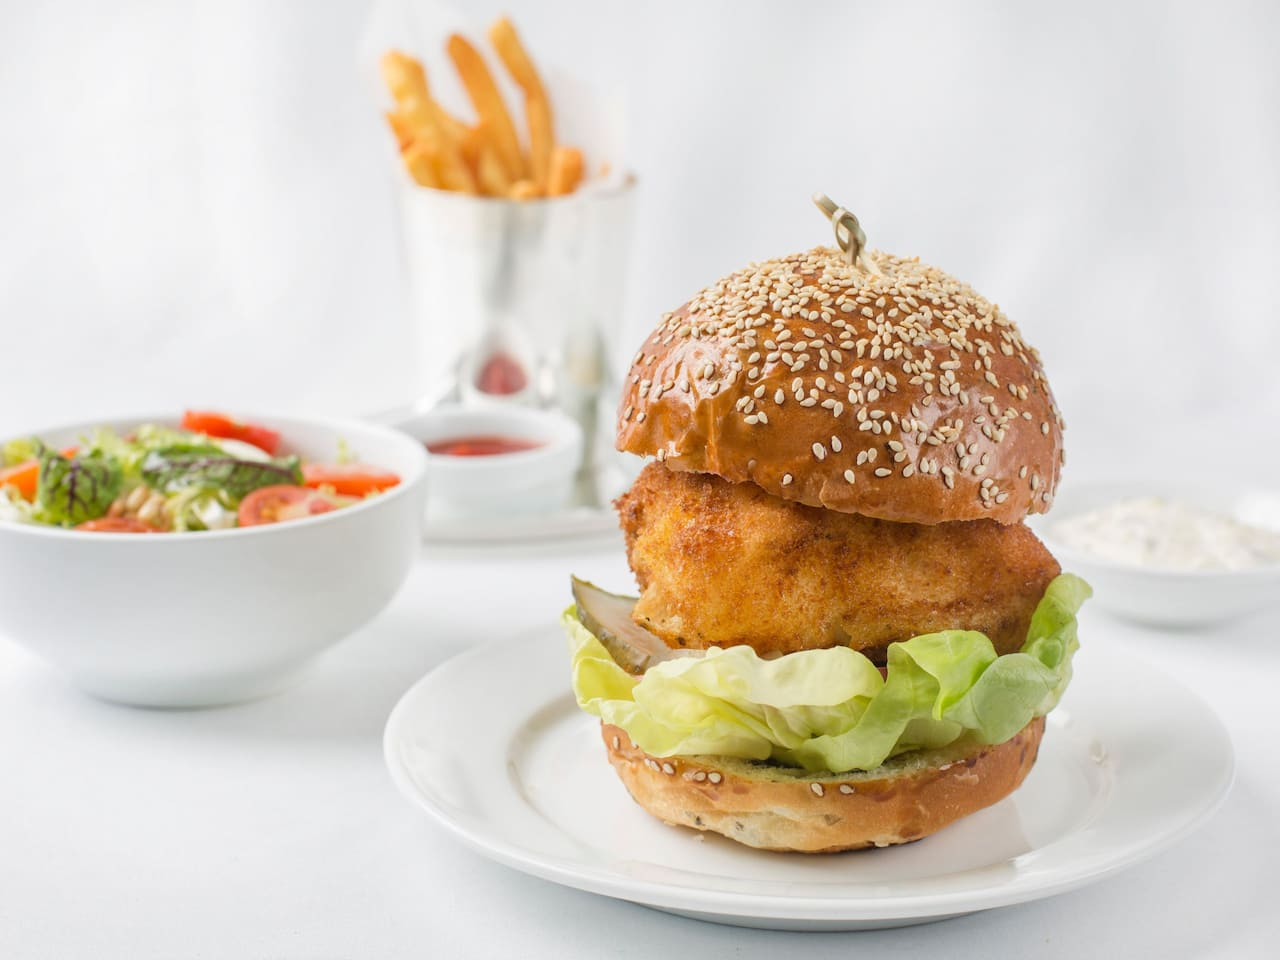 Alaskan Cod Fish Burger